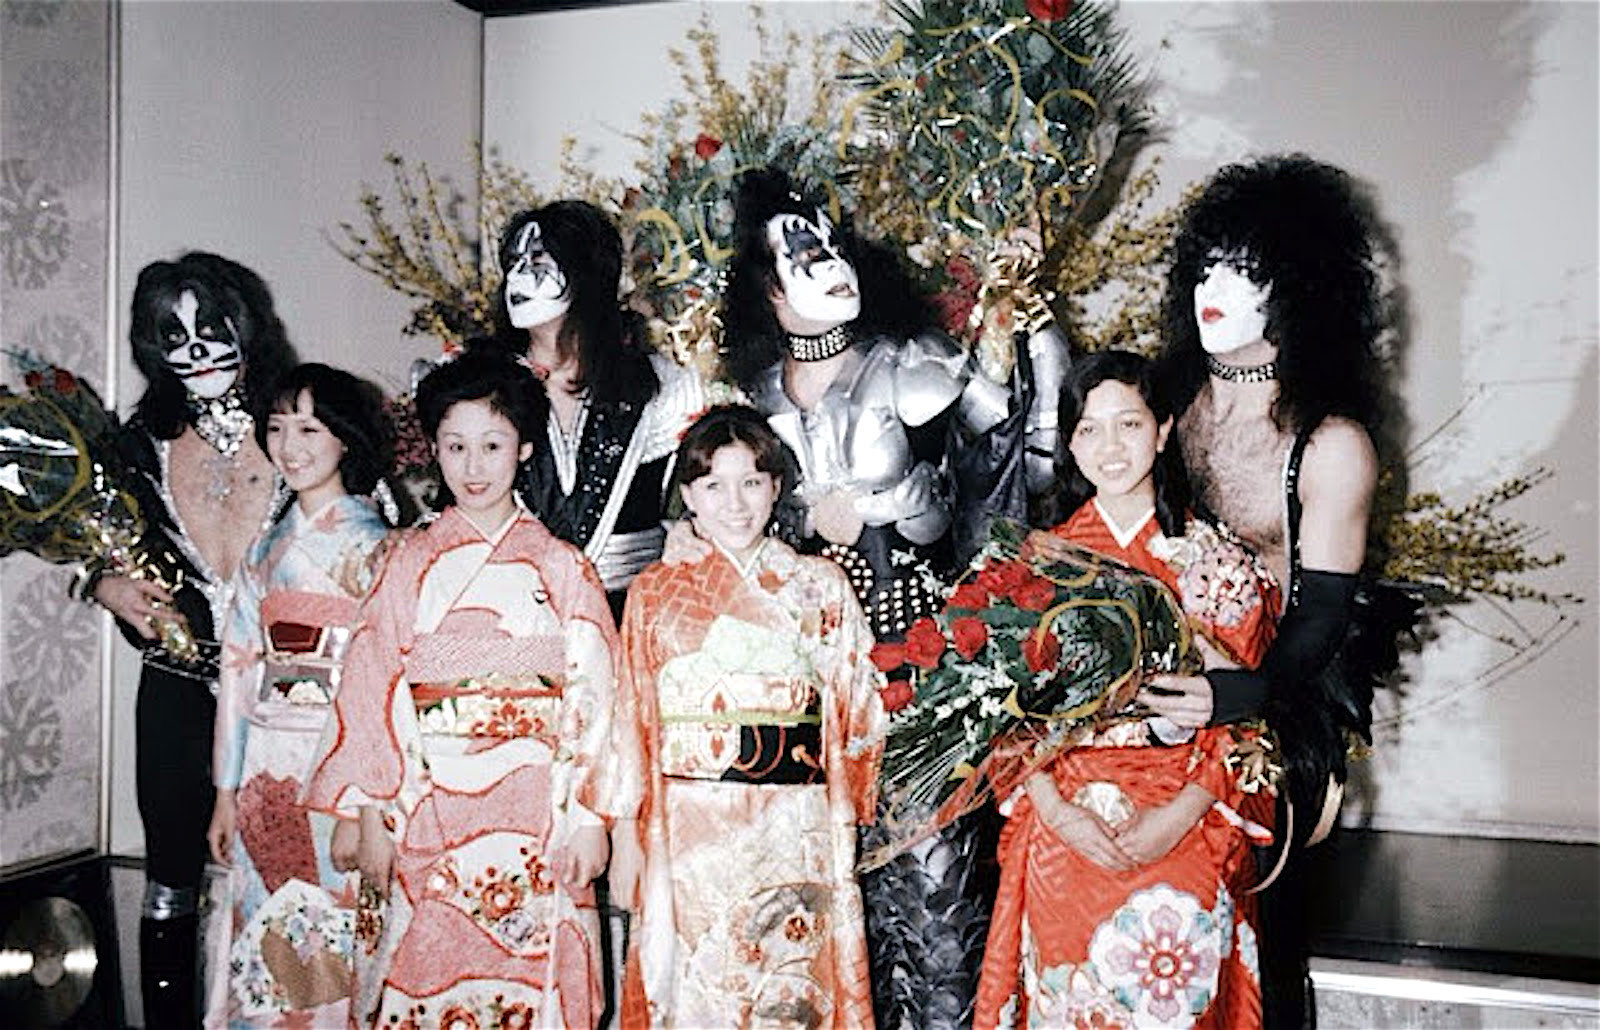 rock-stars-as-tourists-in-japan-1970s-80s-4.jpg